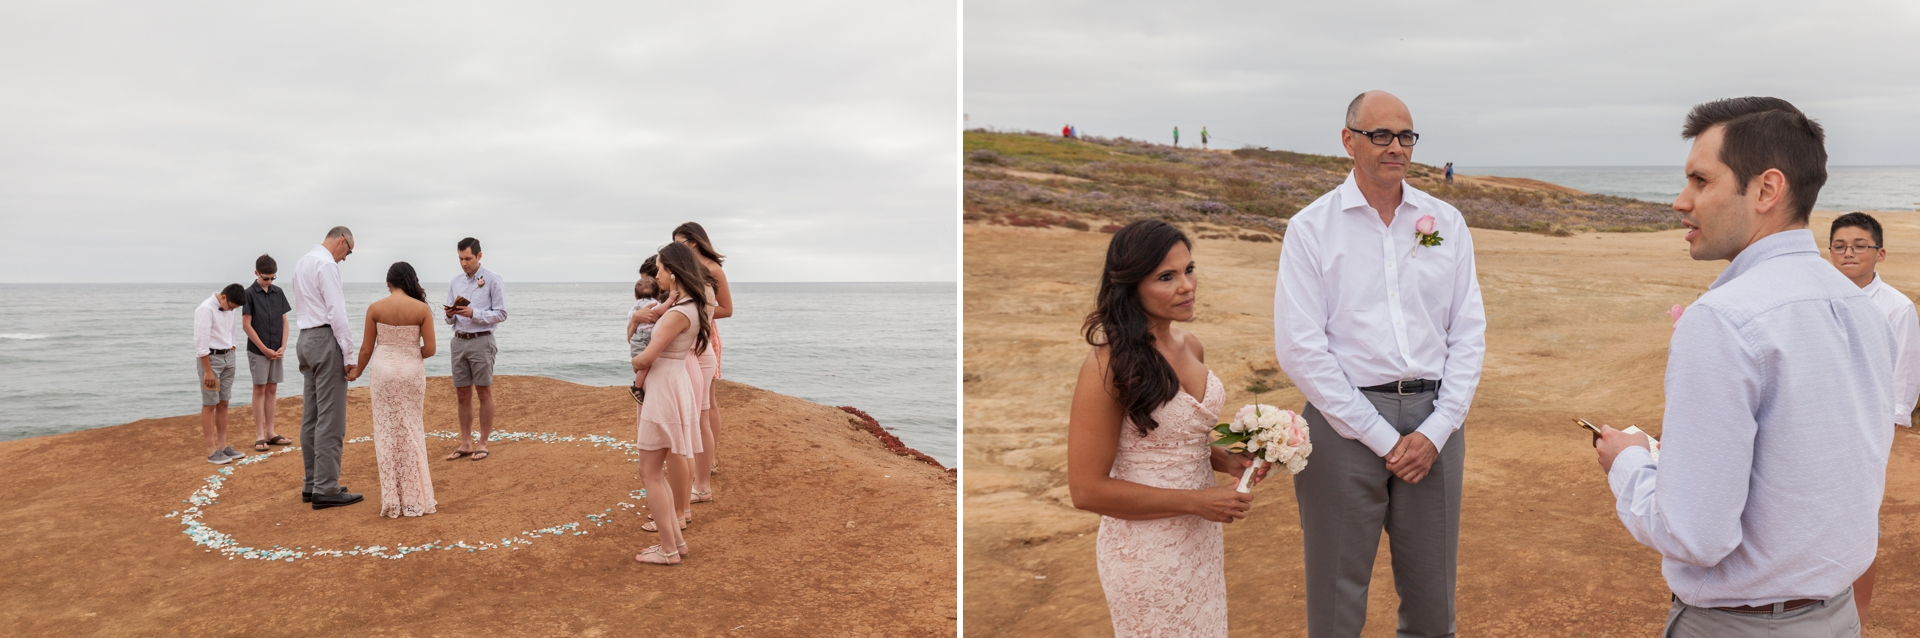 San Diego Elopement June by San Diego Wedding Photographers11.jpg